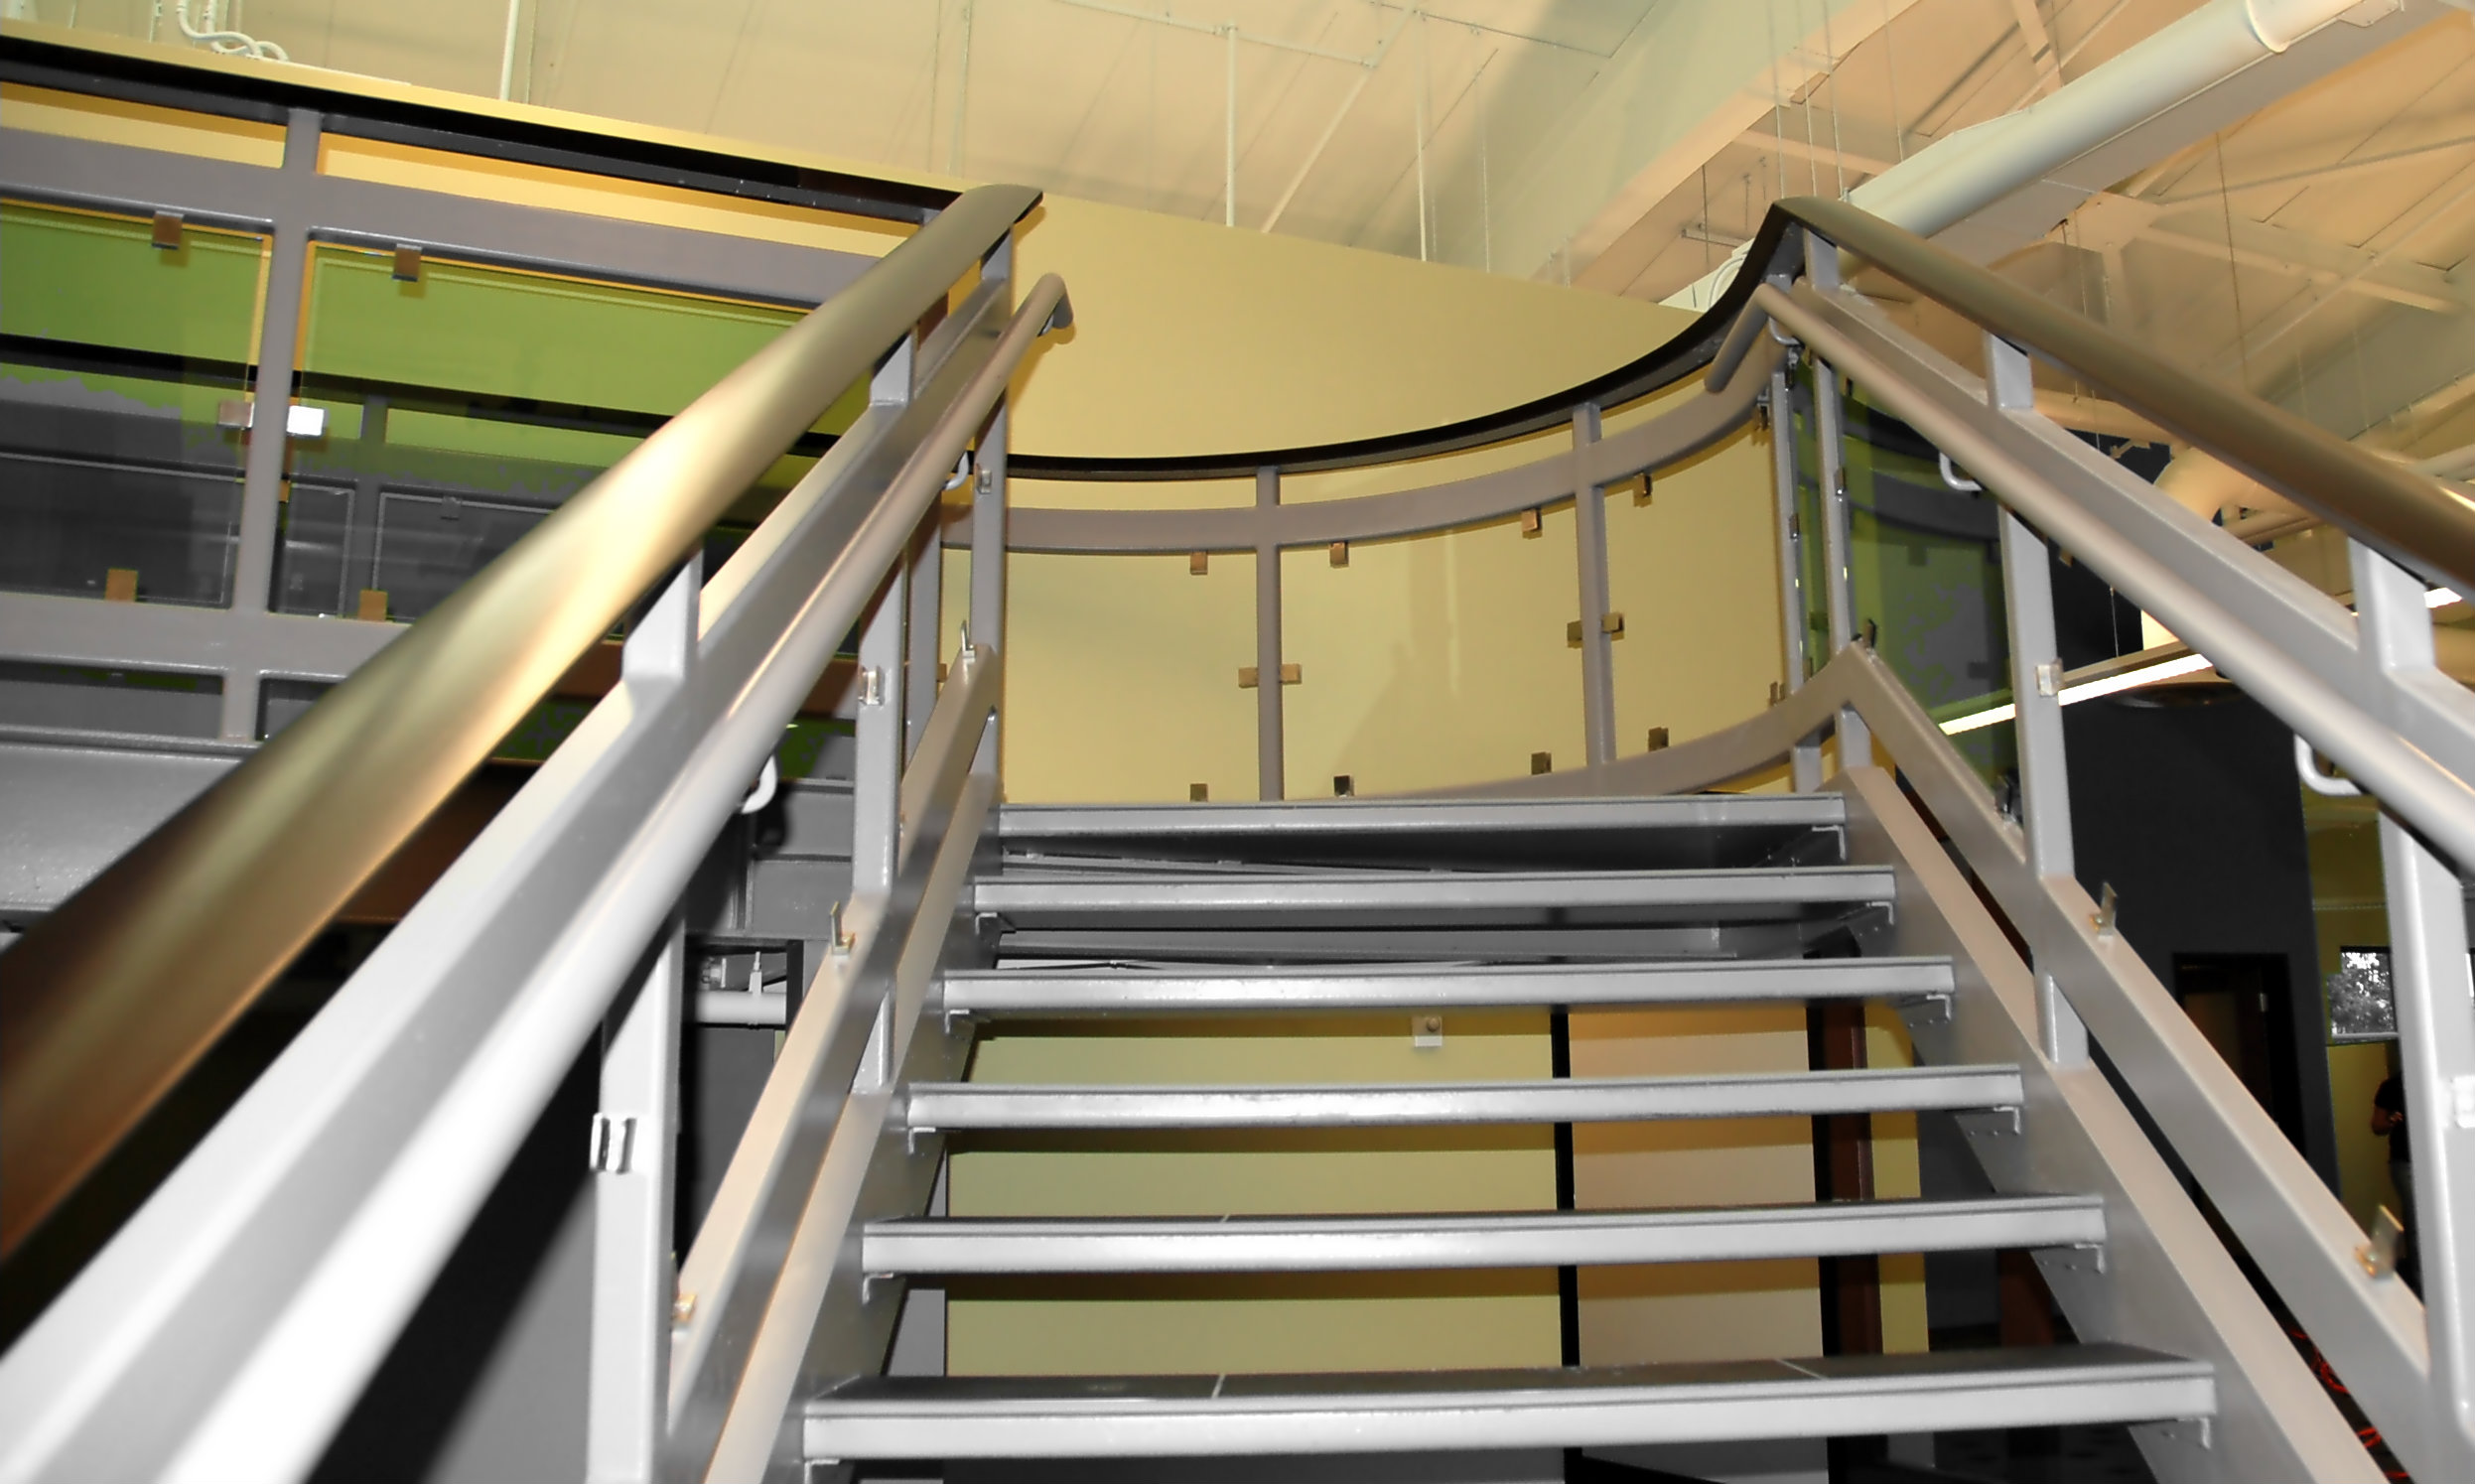 commercial chair rail energy pod price handrail and willsëns architectural millwork